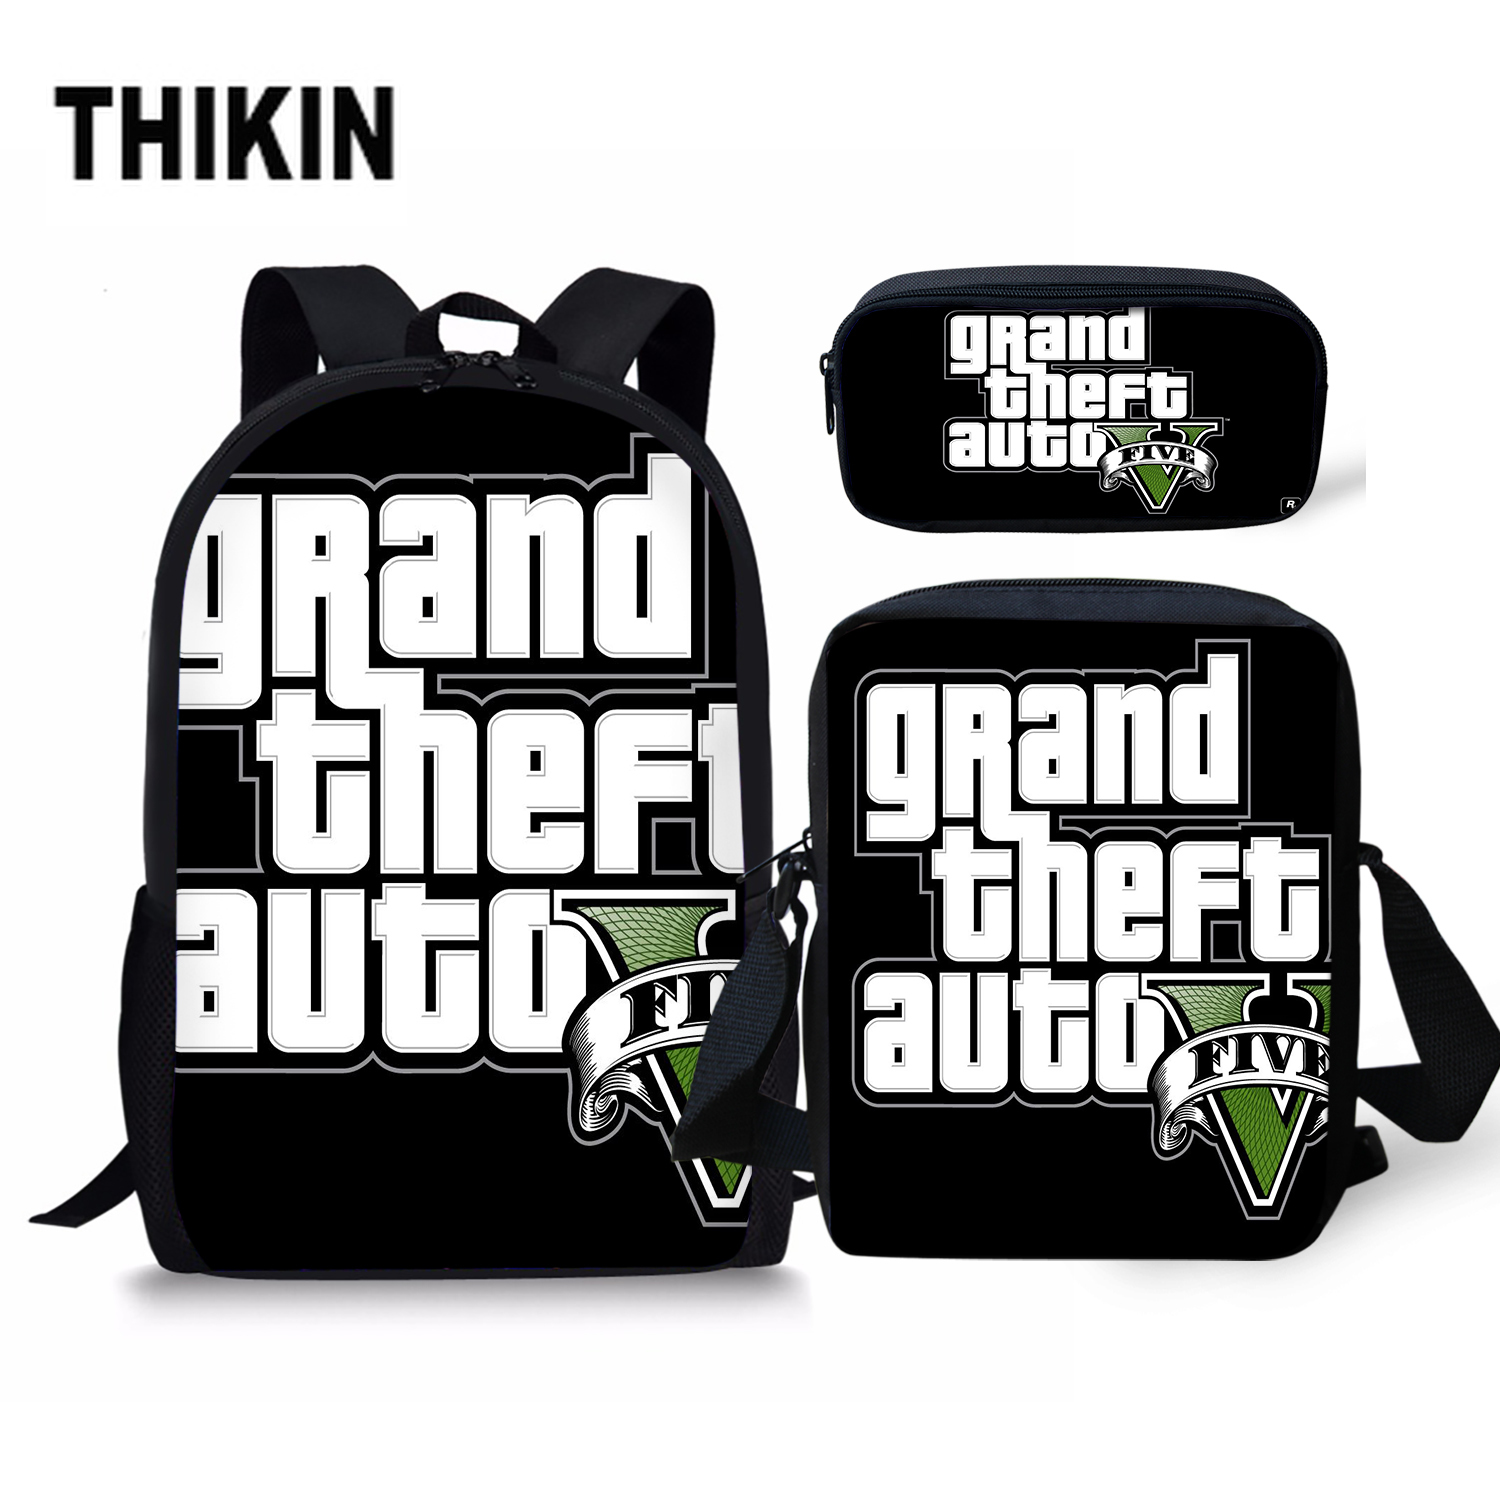 THIKIN Grand Theft Auto Printing School Bag for Men Cool GTA Five Street Fight Kids 3 PCS Schoolbag Boys Teenager Daily Bagpack in School Bags from Luggage Bags